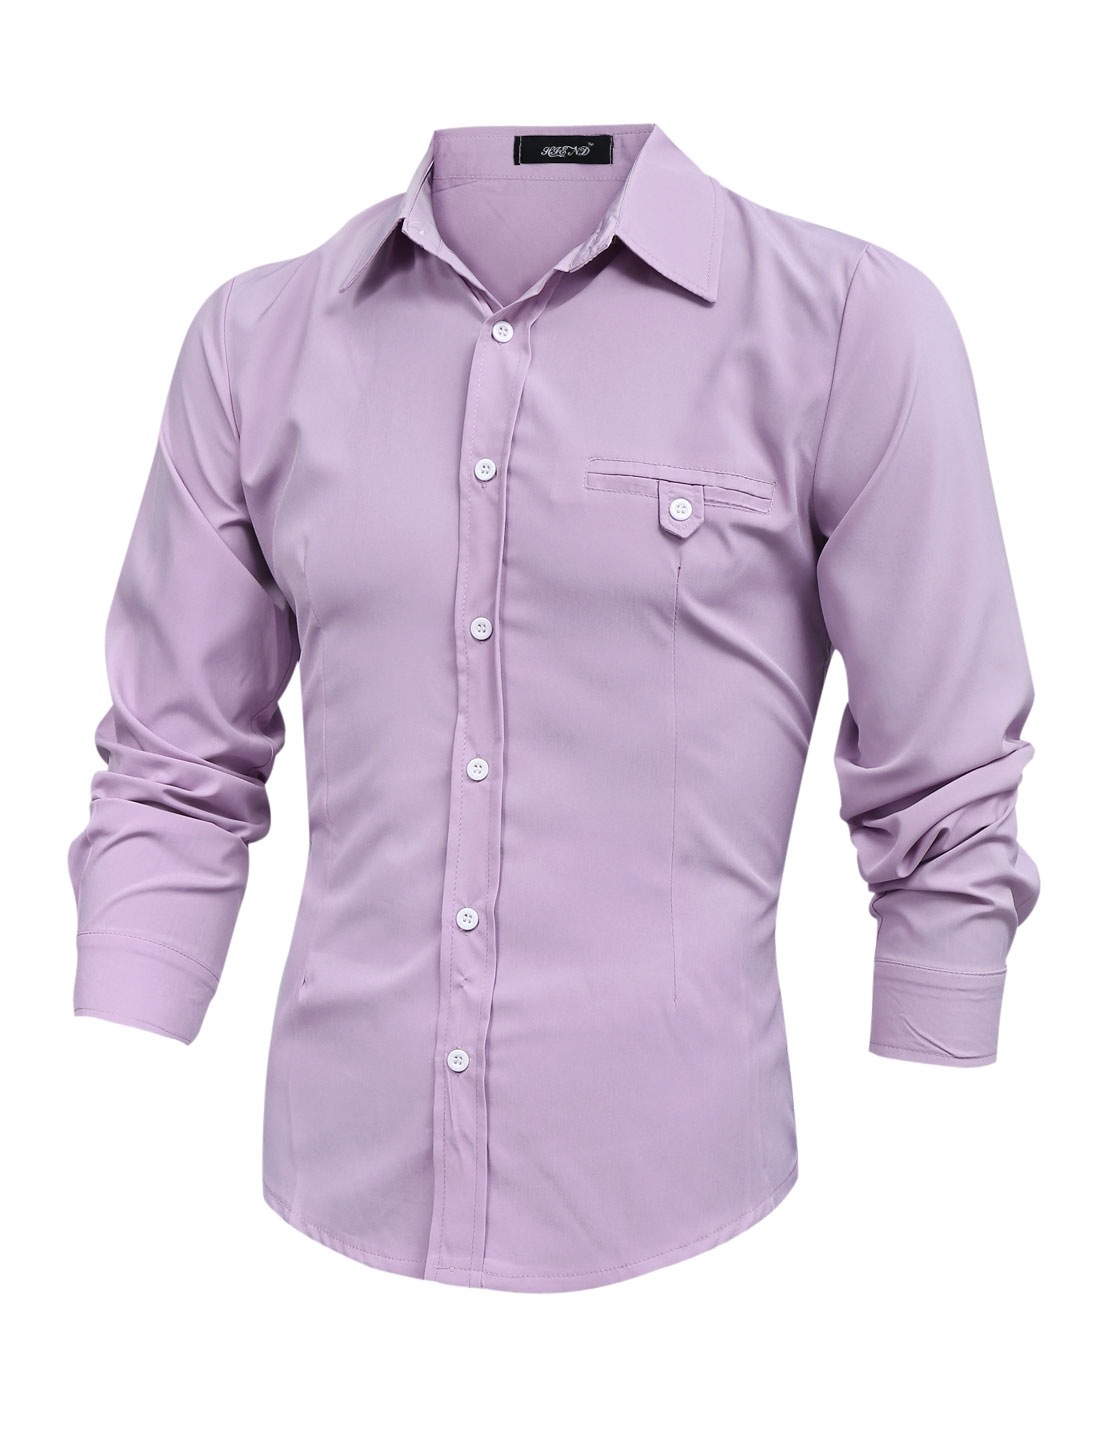 Men Long Sleeve Button Front Mock Welt Button Pocket Shirt Lavender M